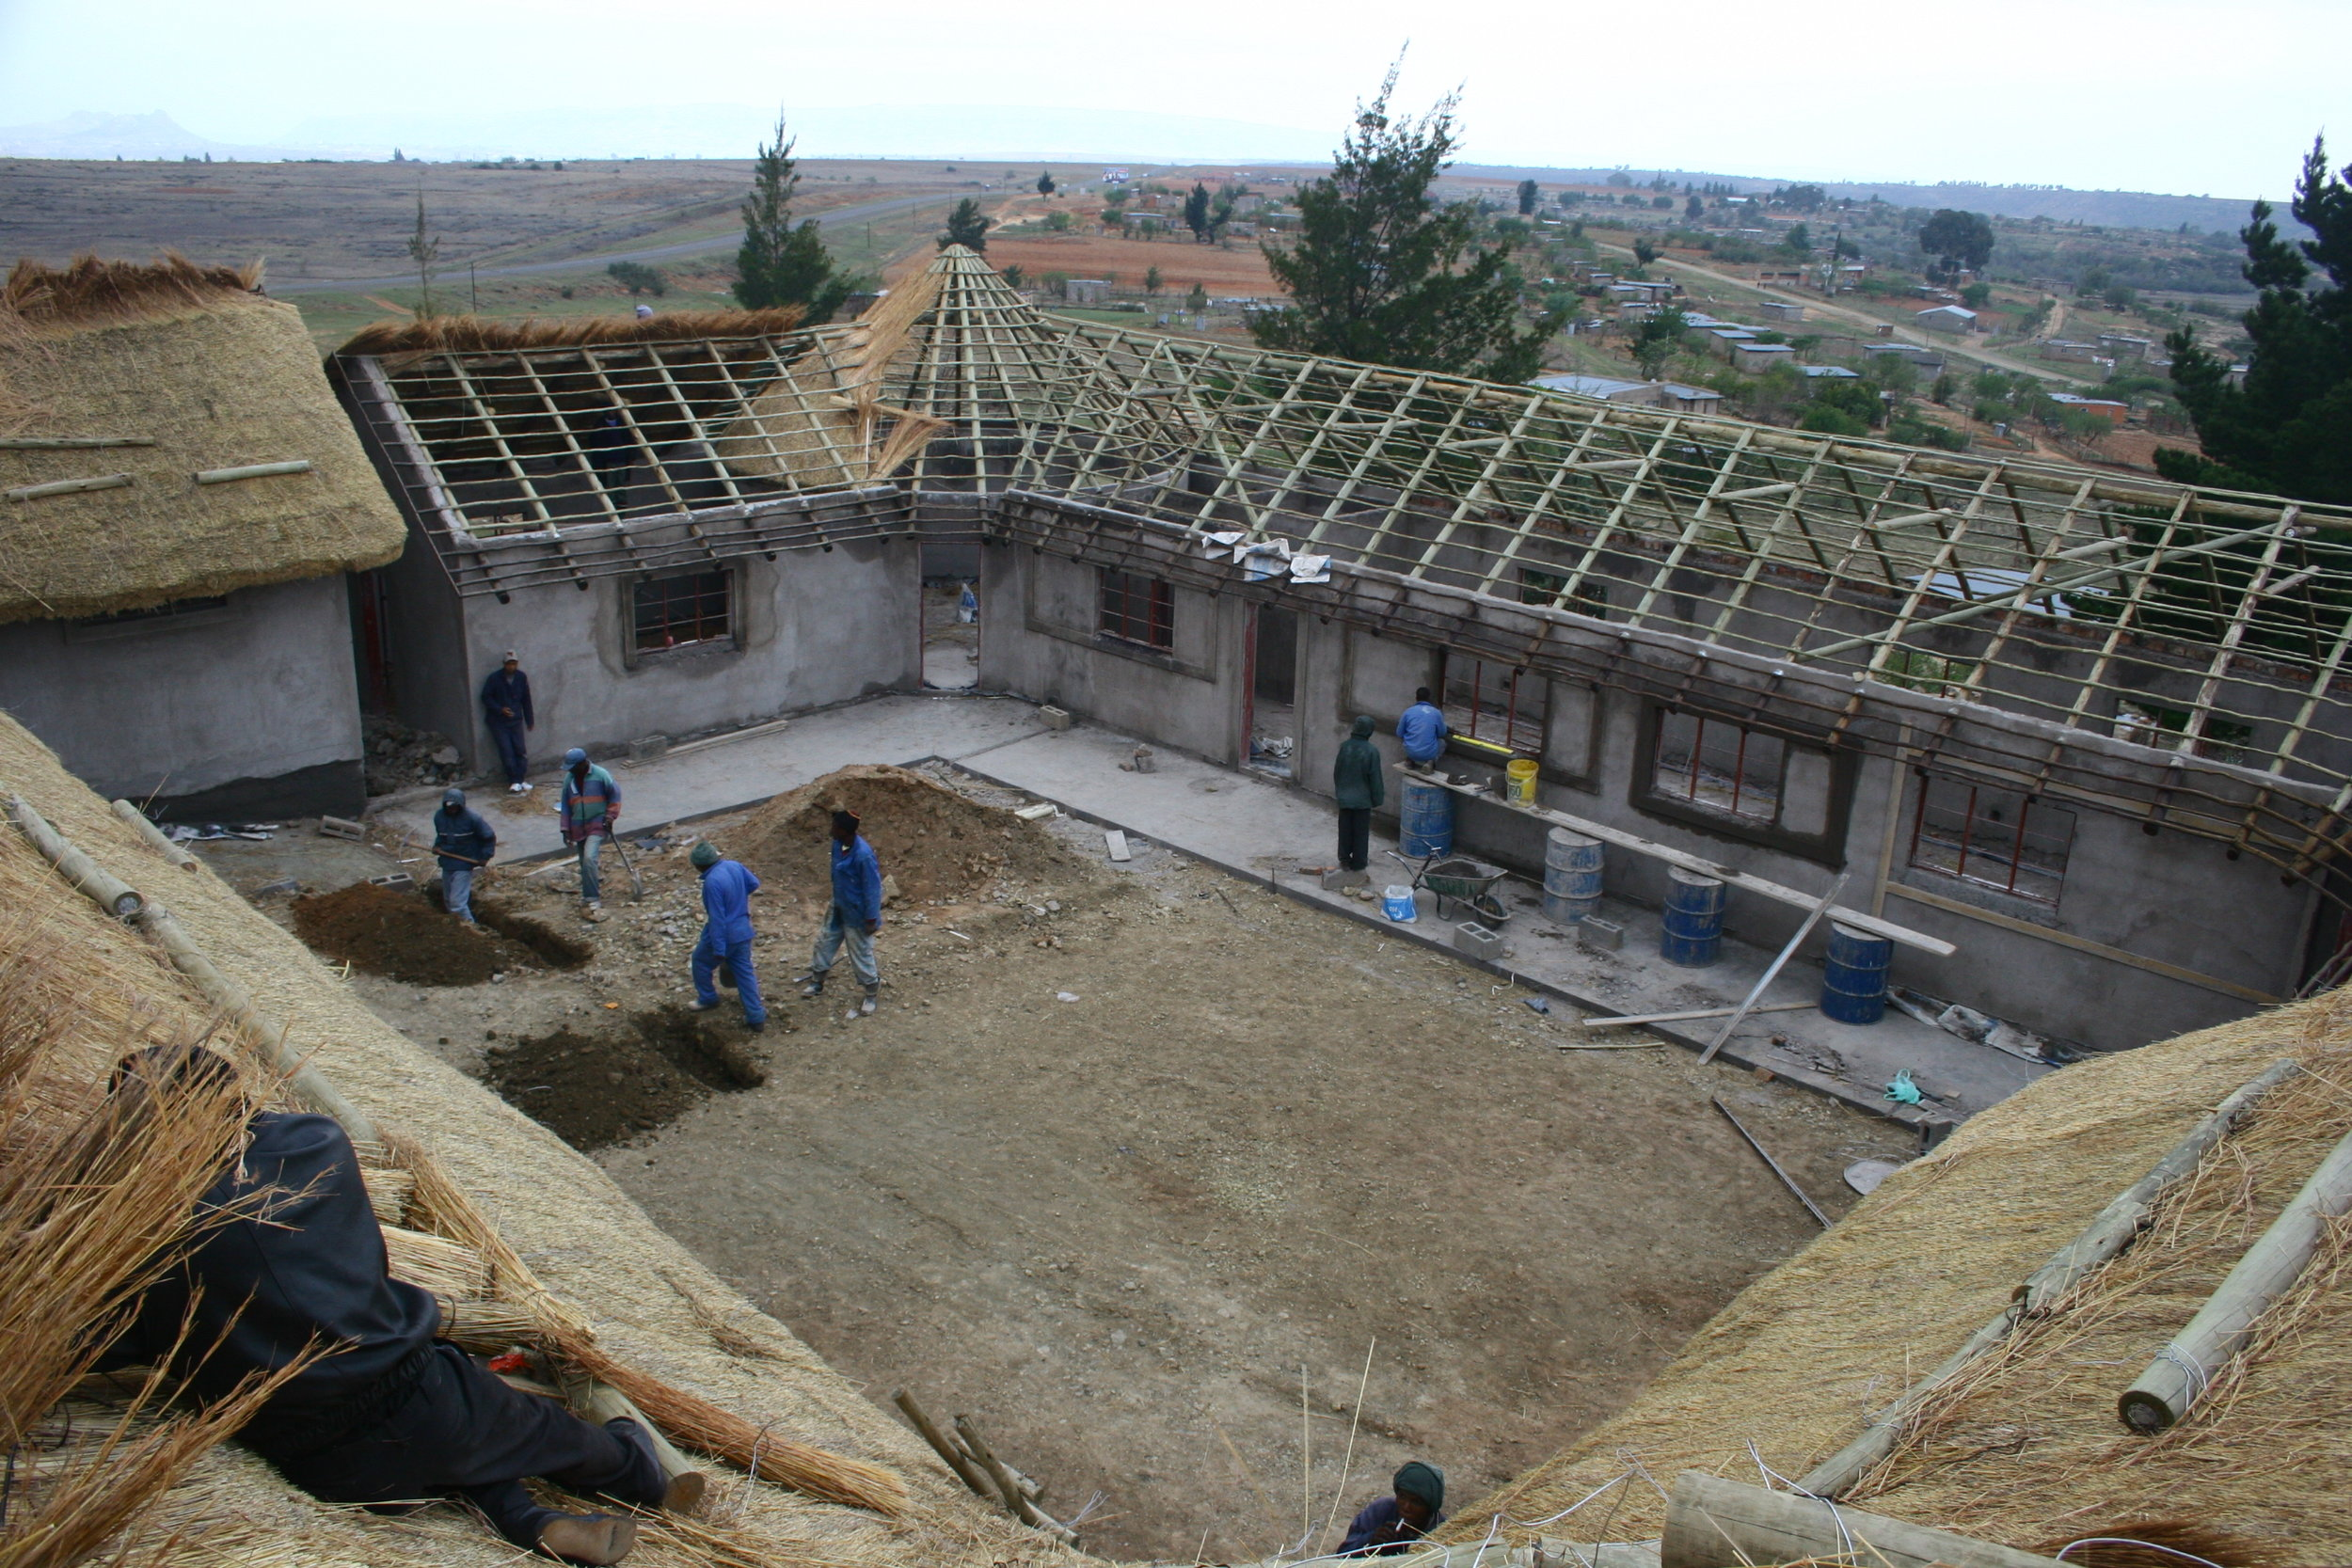 View of building and courtyard in construction